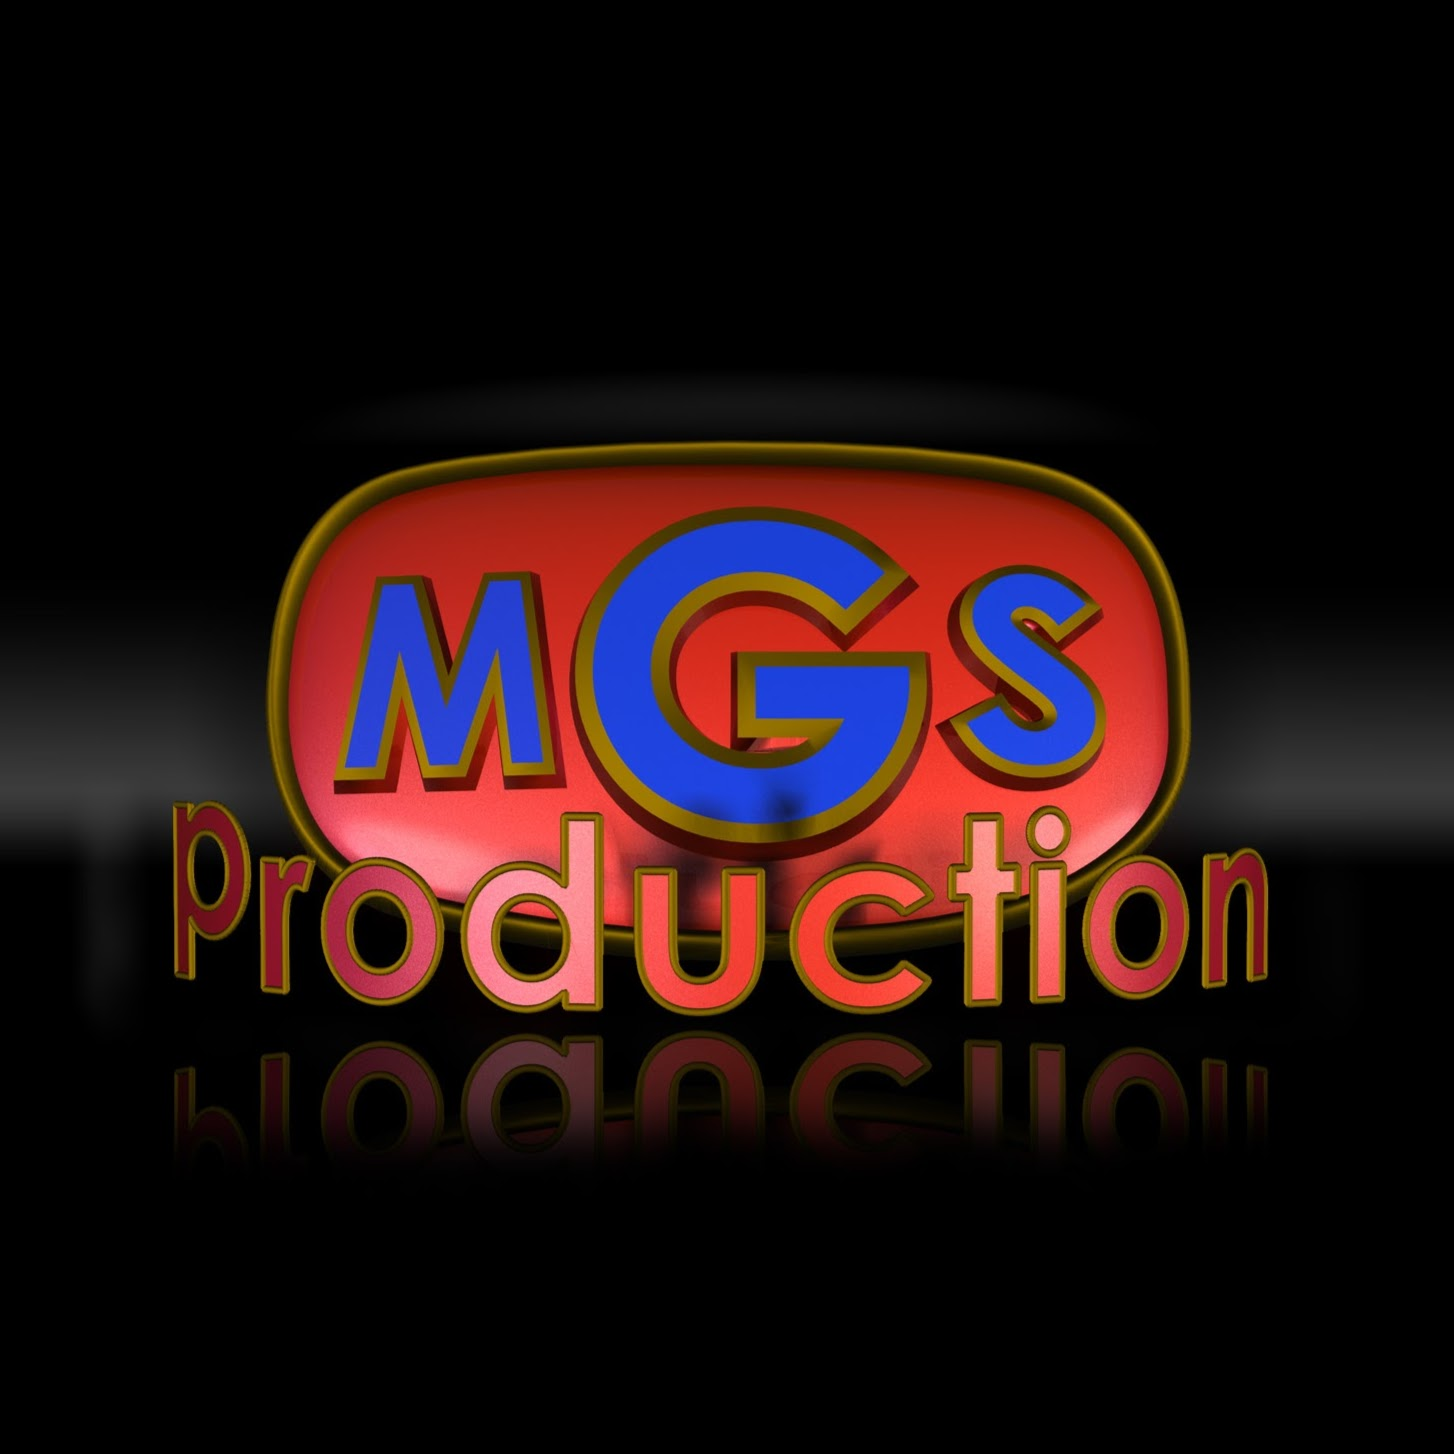 MGS Production